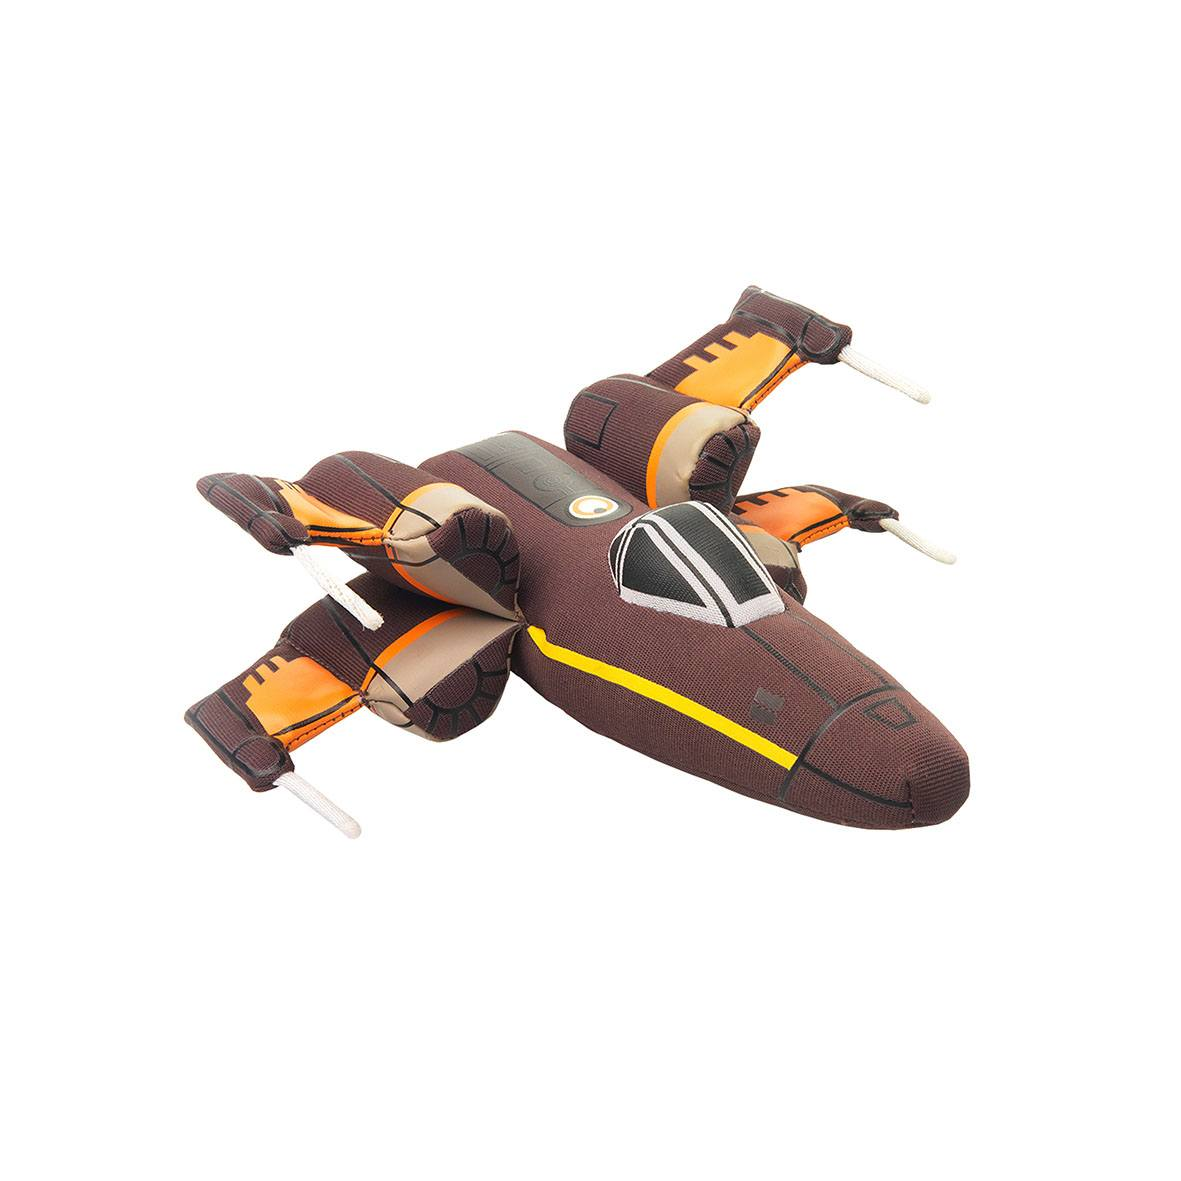 Star Wars Episode VII Plush Vehicle Millennium Poe's X-Wing Fighter 20 cm